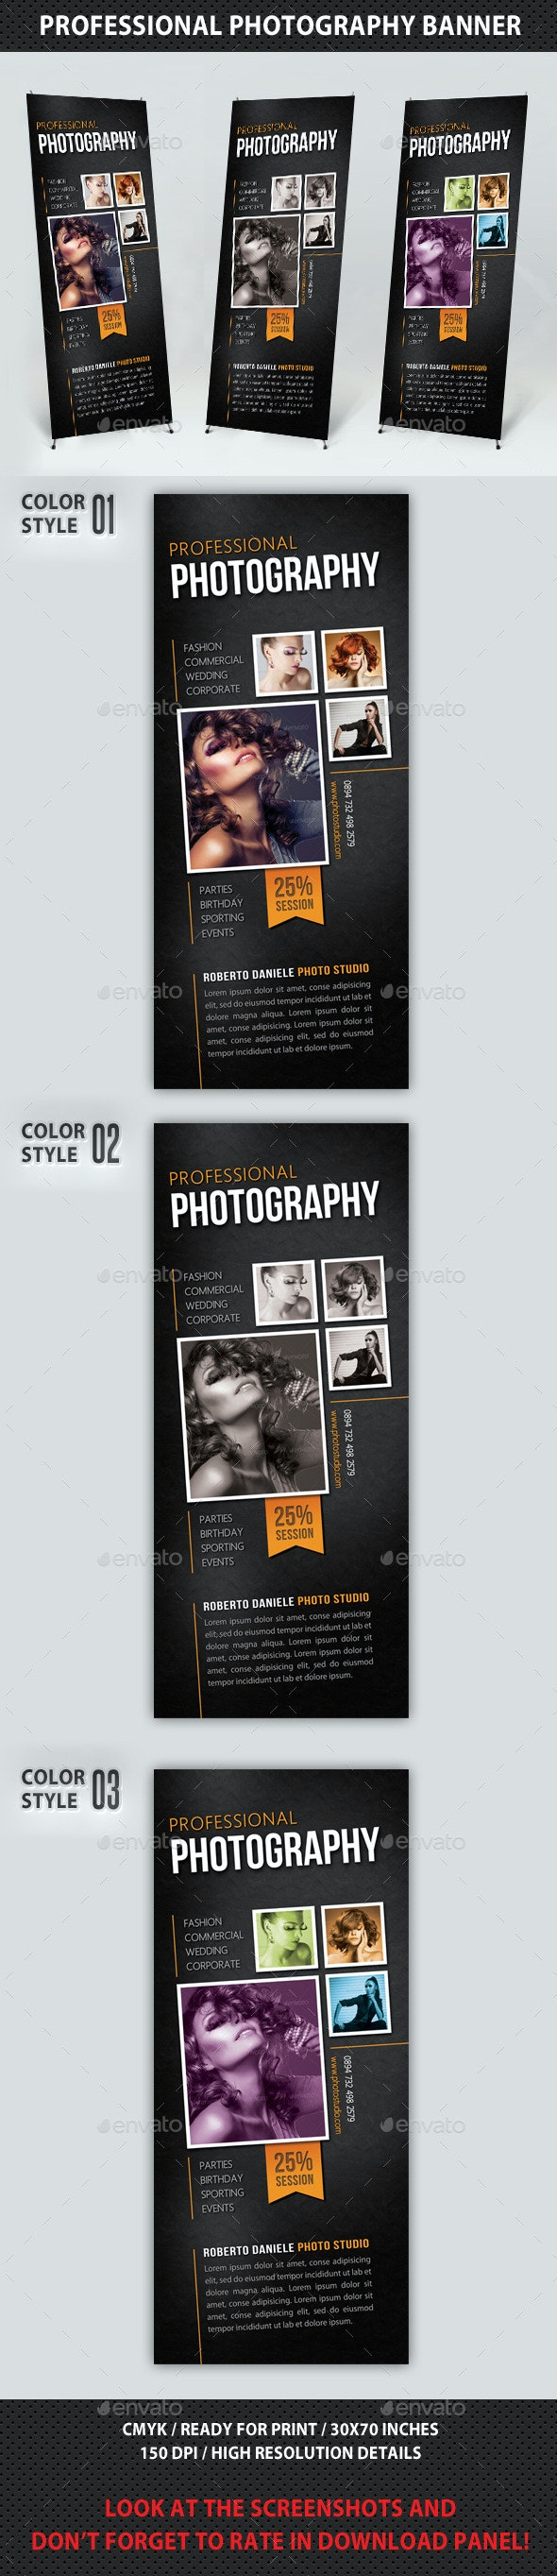 Photography Studio Multipurpose Banner 13 - Signage Print Templates